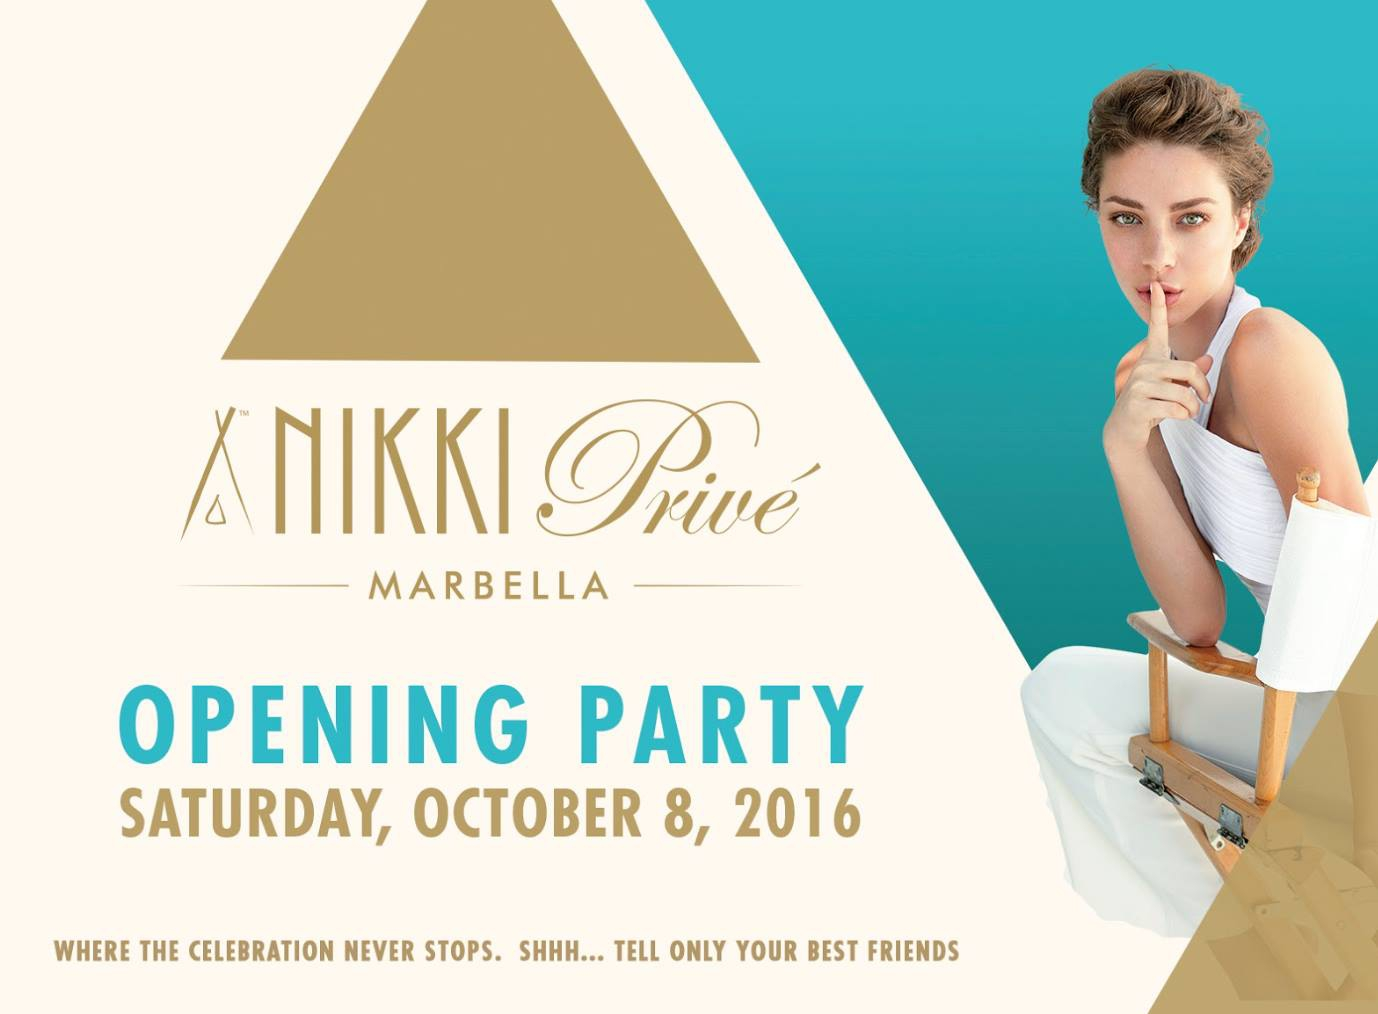 Opening Party Nikki Privé Marbella